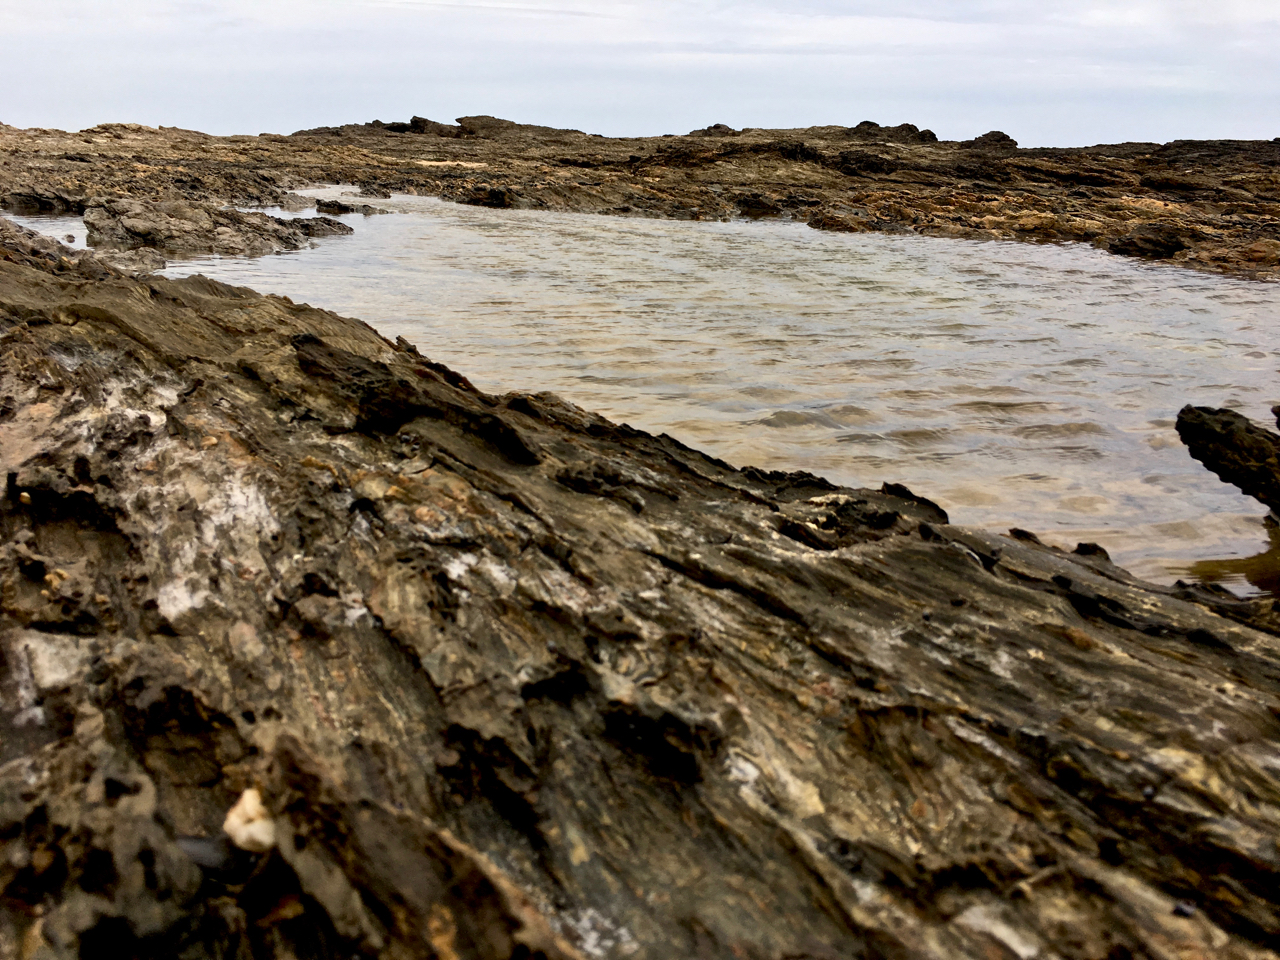 rock pool with wind ripples